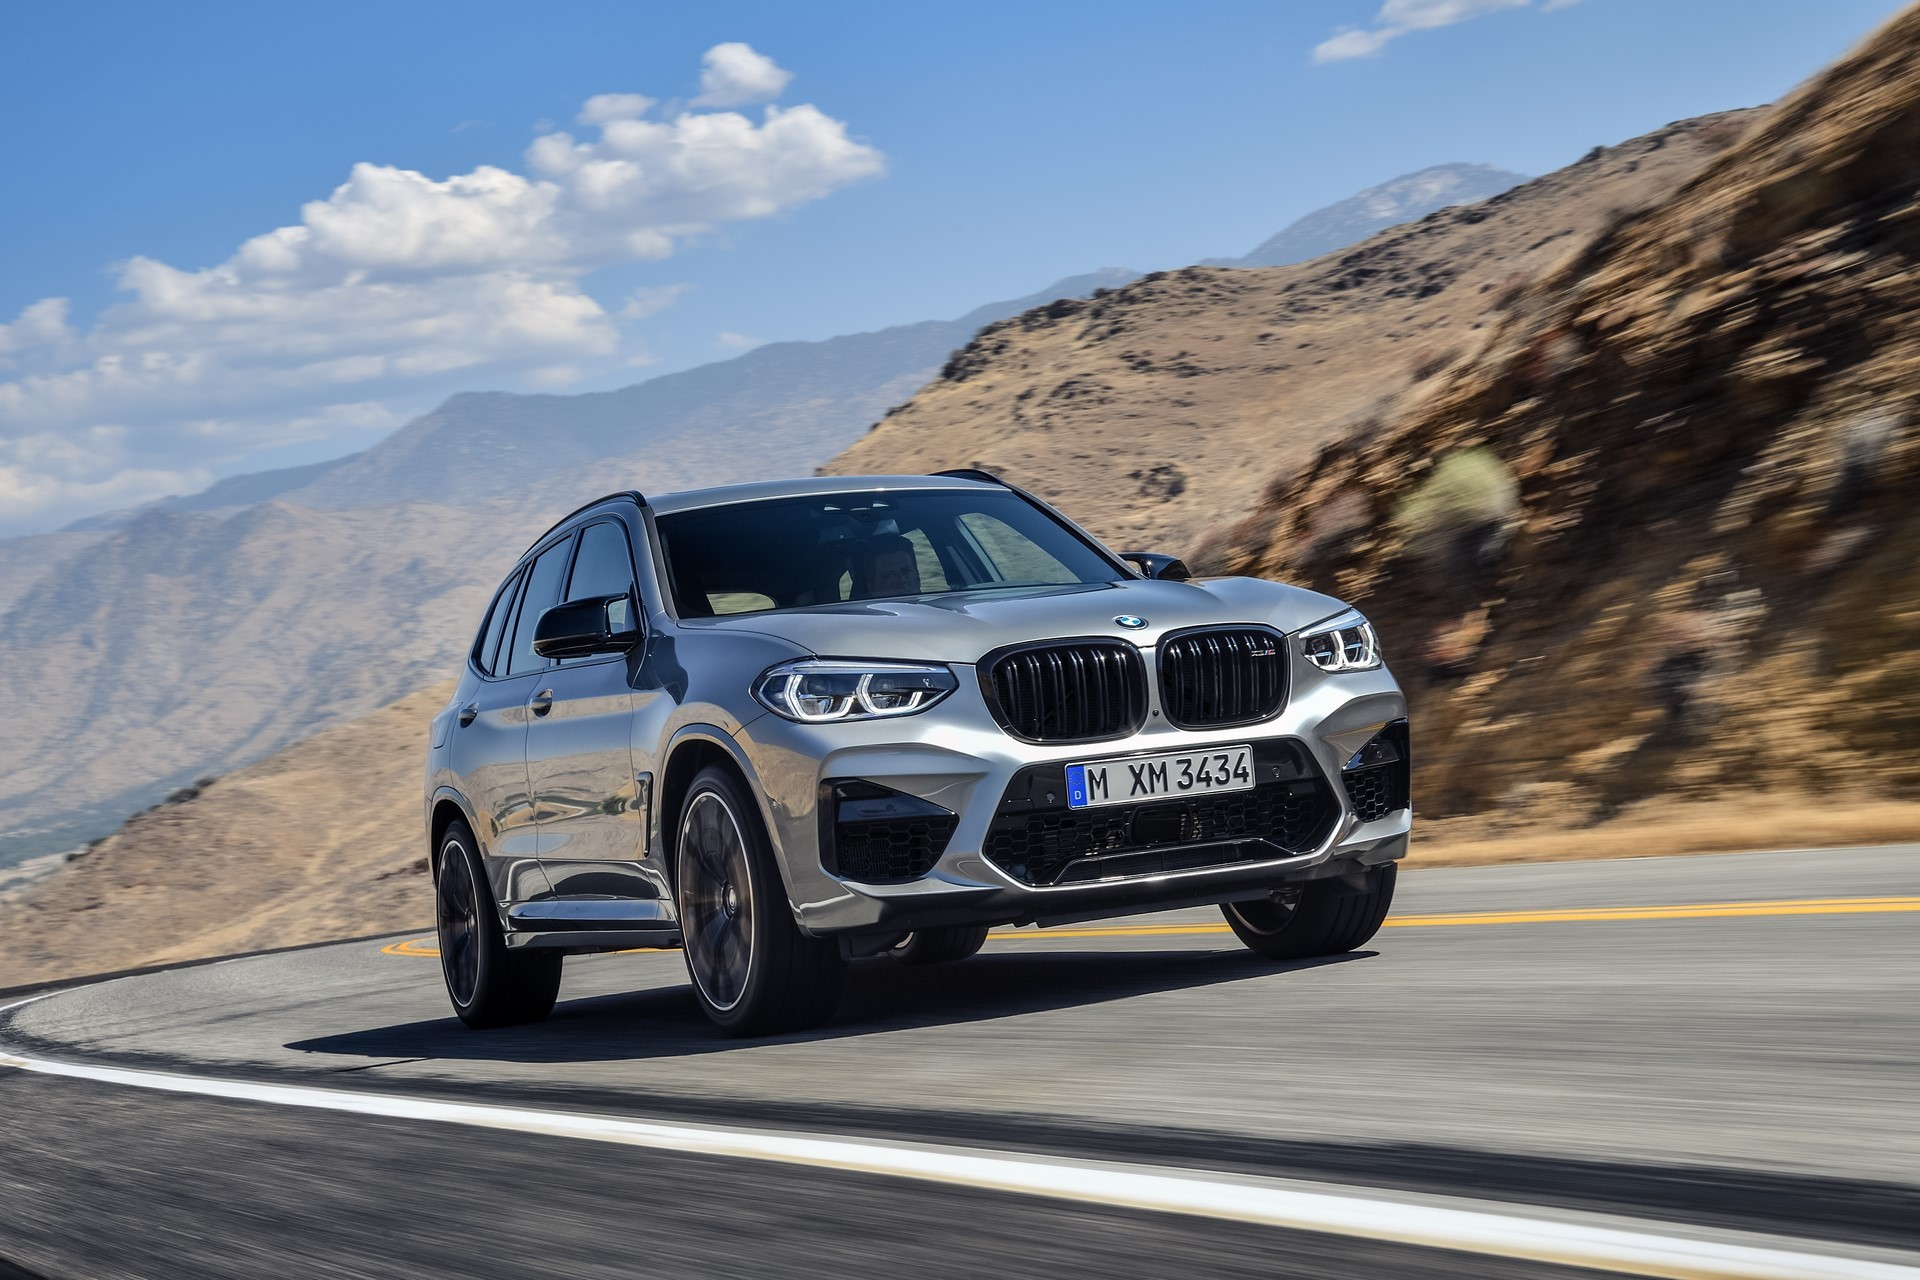 BMW X3 M and X4 M 2019 (22)